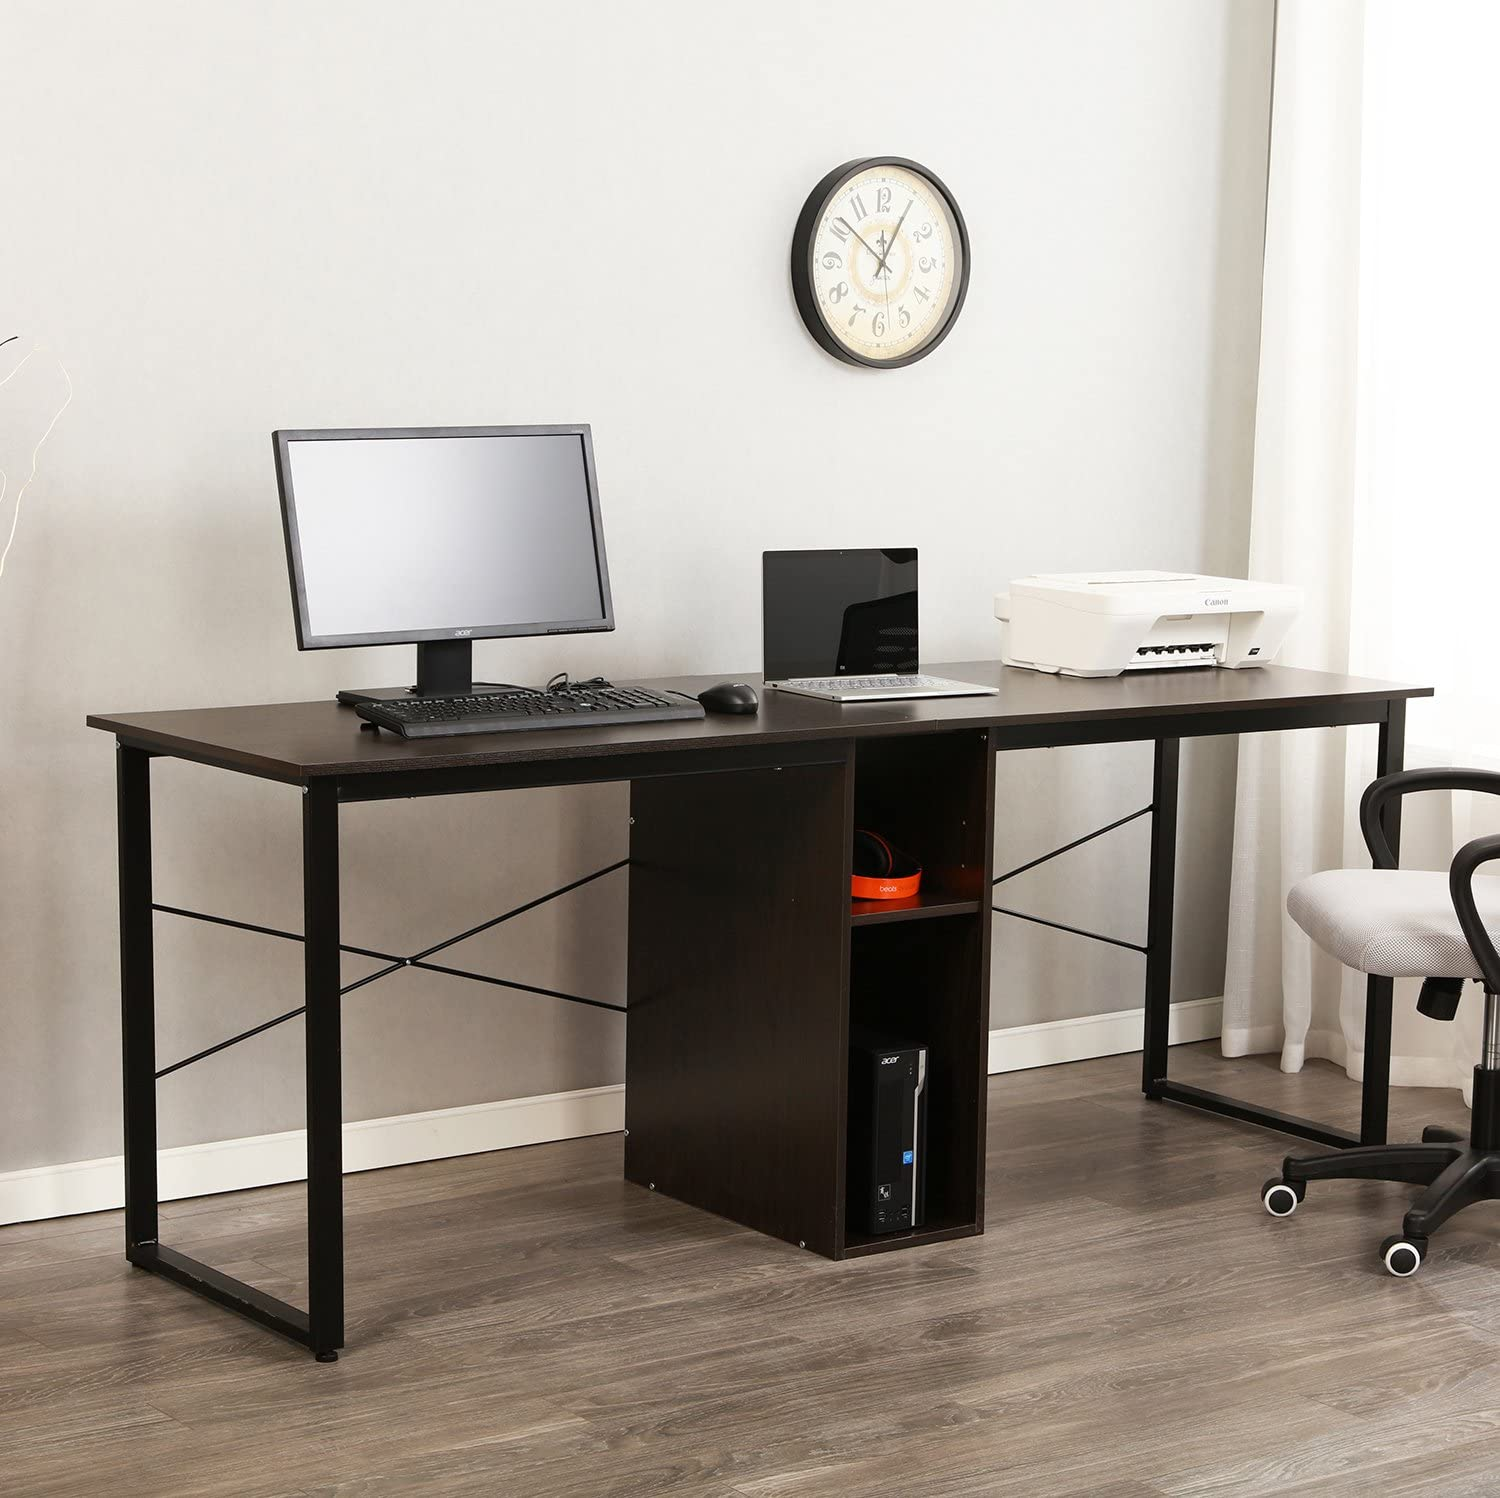 - Amazon.com: Sogesfurniture Large Double Workstation Computer Desk